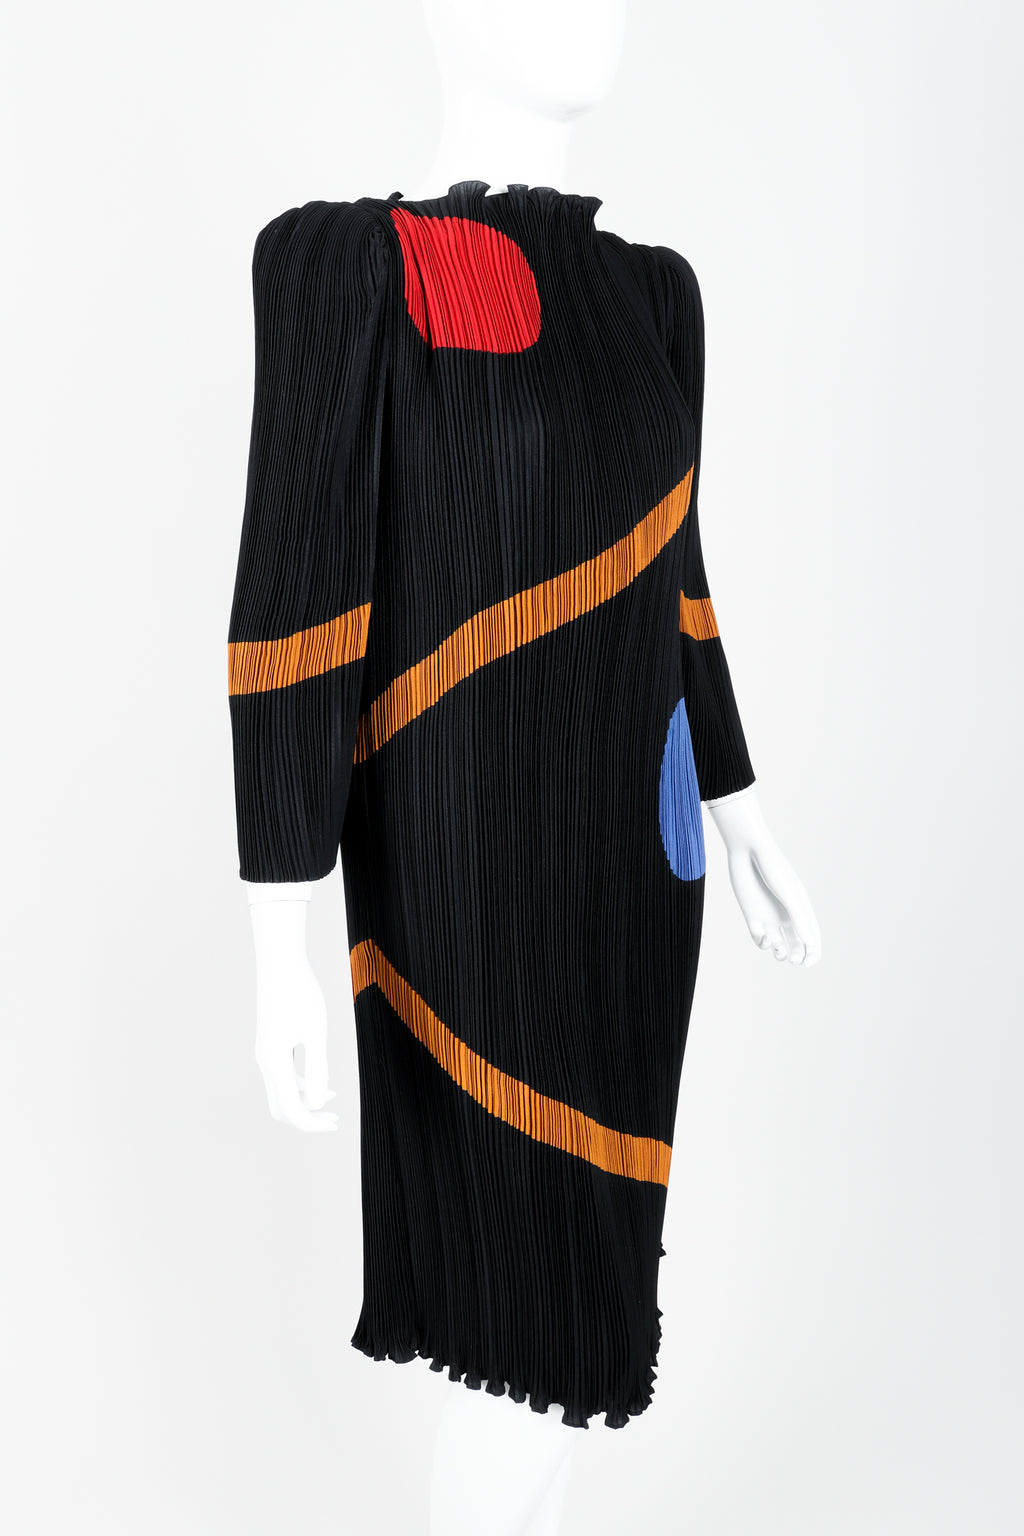 Vintage John Bates Pleated Graphic Print Dress Angle at Recess